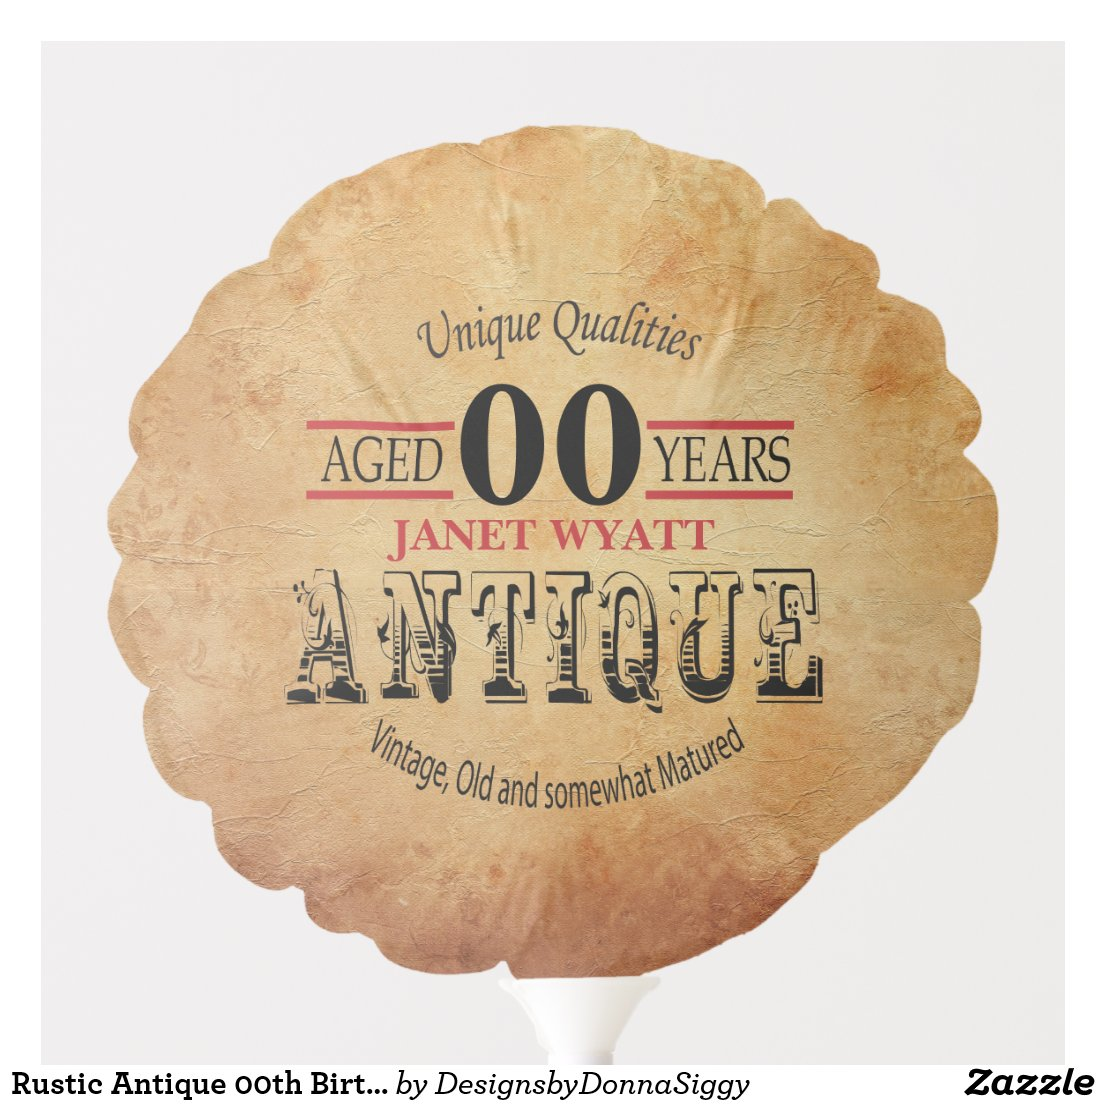 Rustic Antique 00th Birthday Balloon